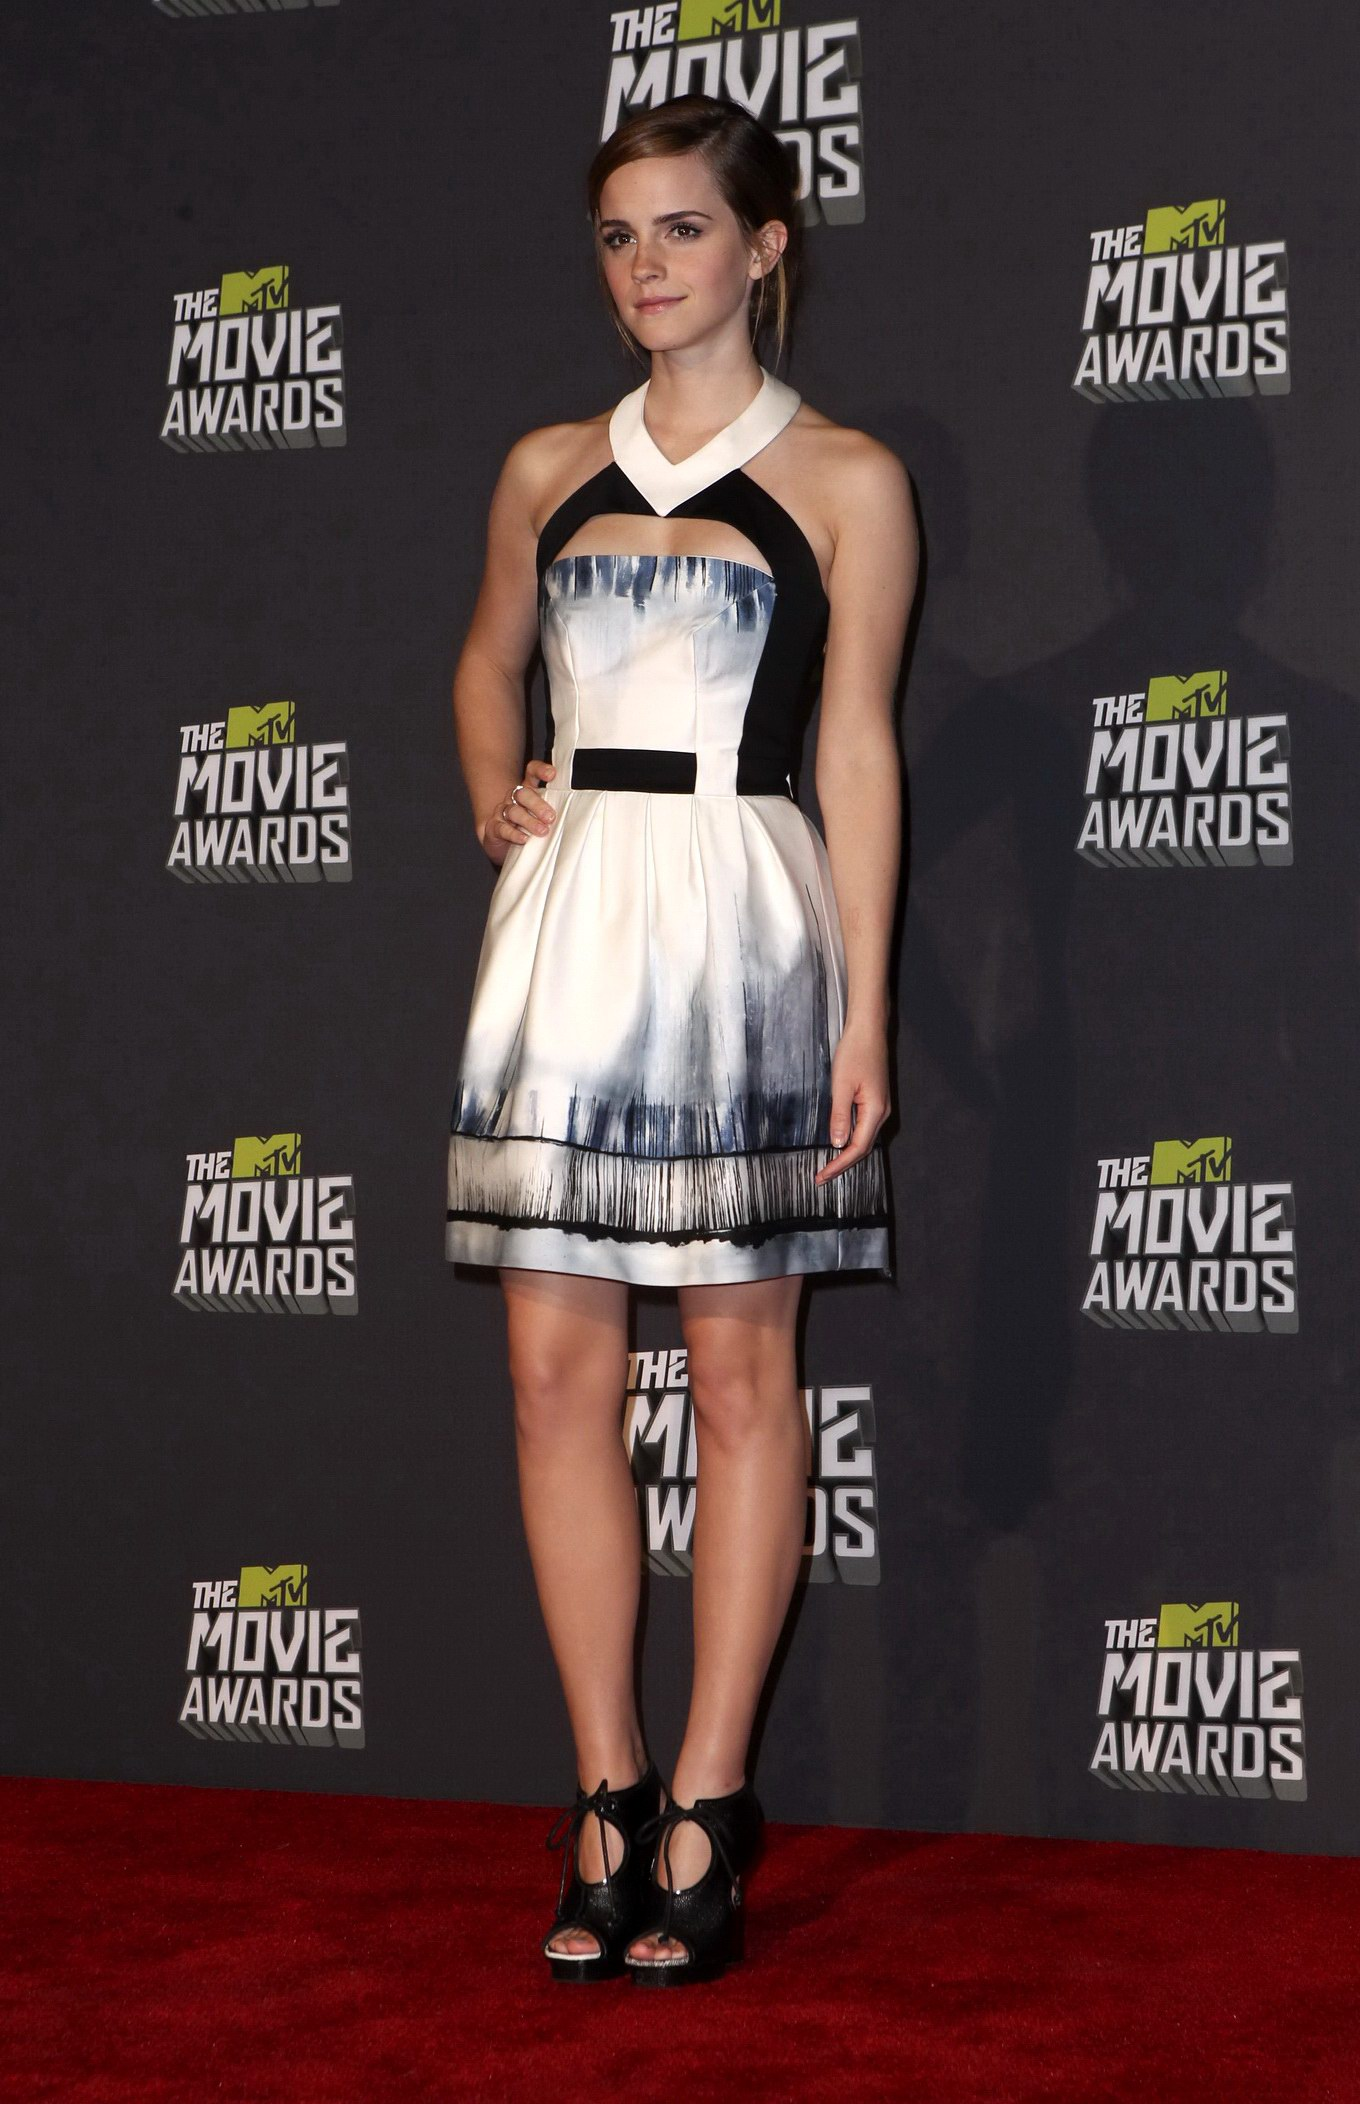 Emma Watson Leggy Cleavy At The Mtv Movie Awards In Culver City